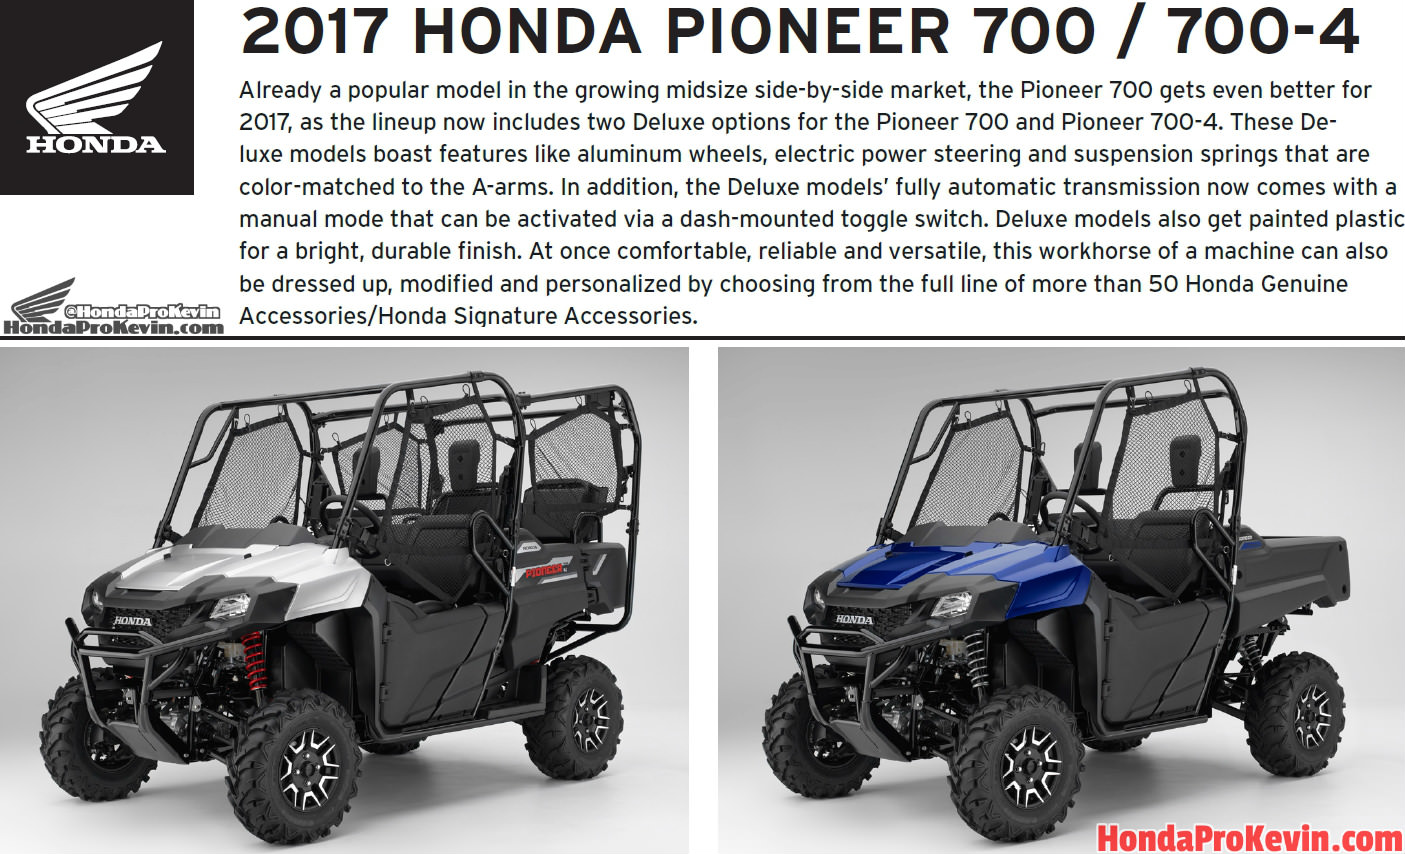 2017 Honda Pioneer 700 & 700-4 Review / Specs & Changes - HP & TQ, Price, Colors - Side by Side ATV / UTV / SxS / Utility Vehicle 4x4